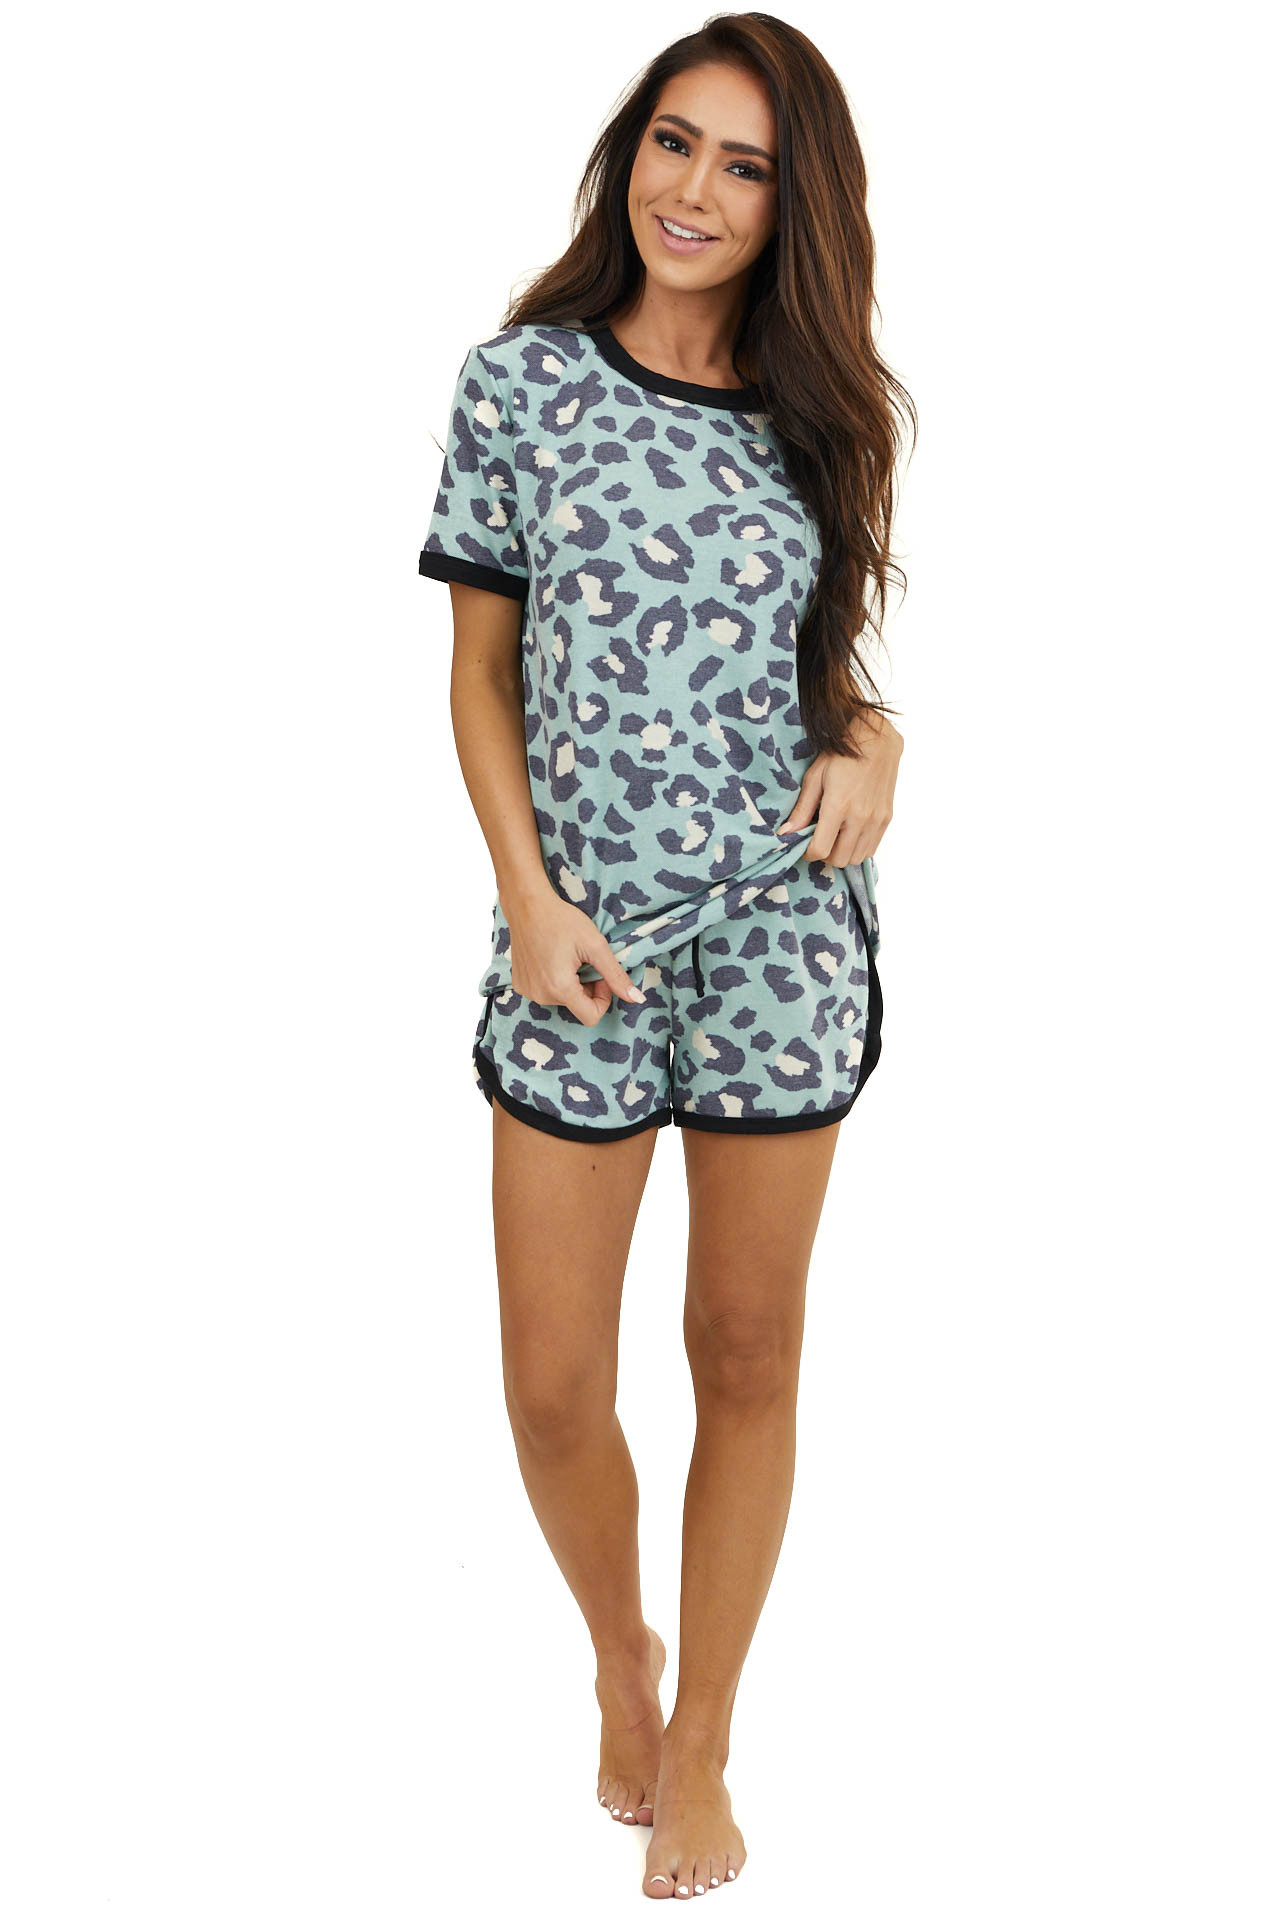 Sky Blue Leopard Print Short Sleeve with Shorts Lounge Set